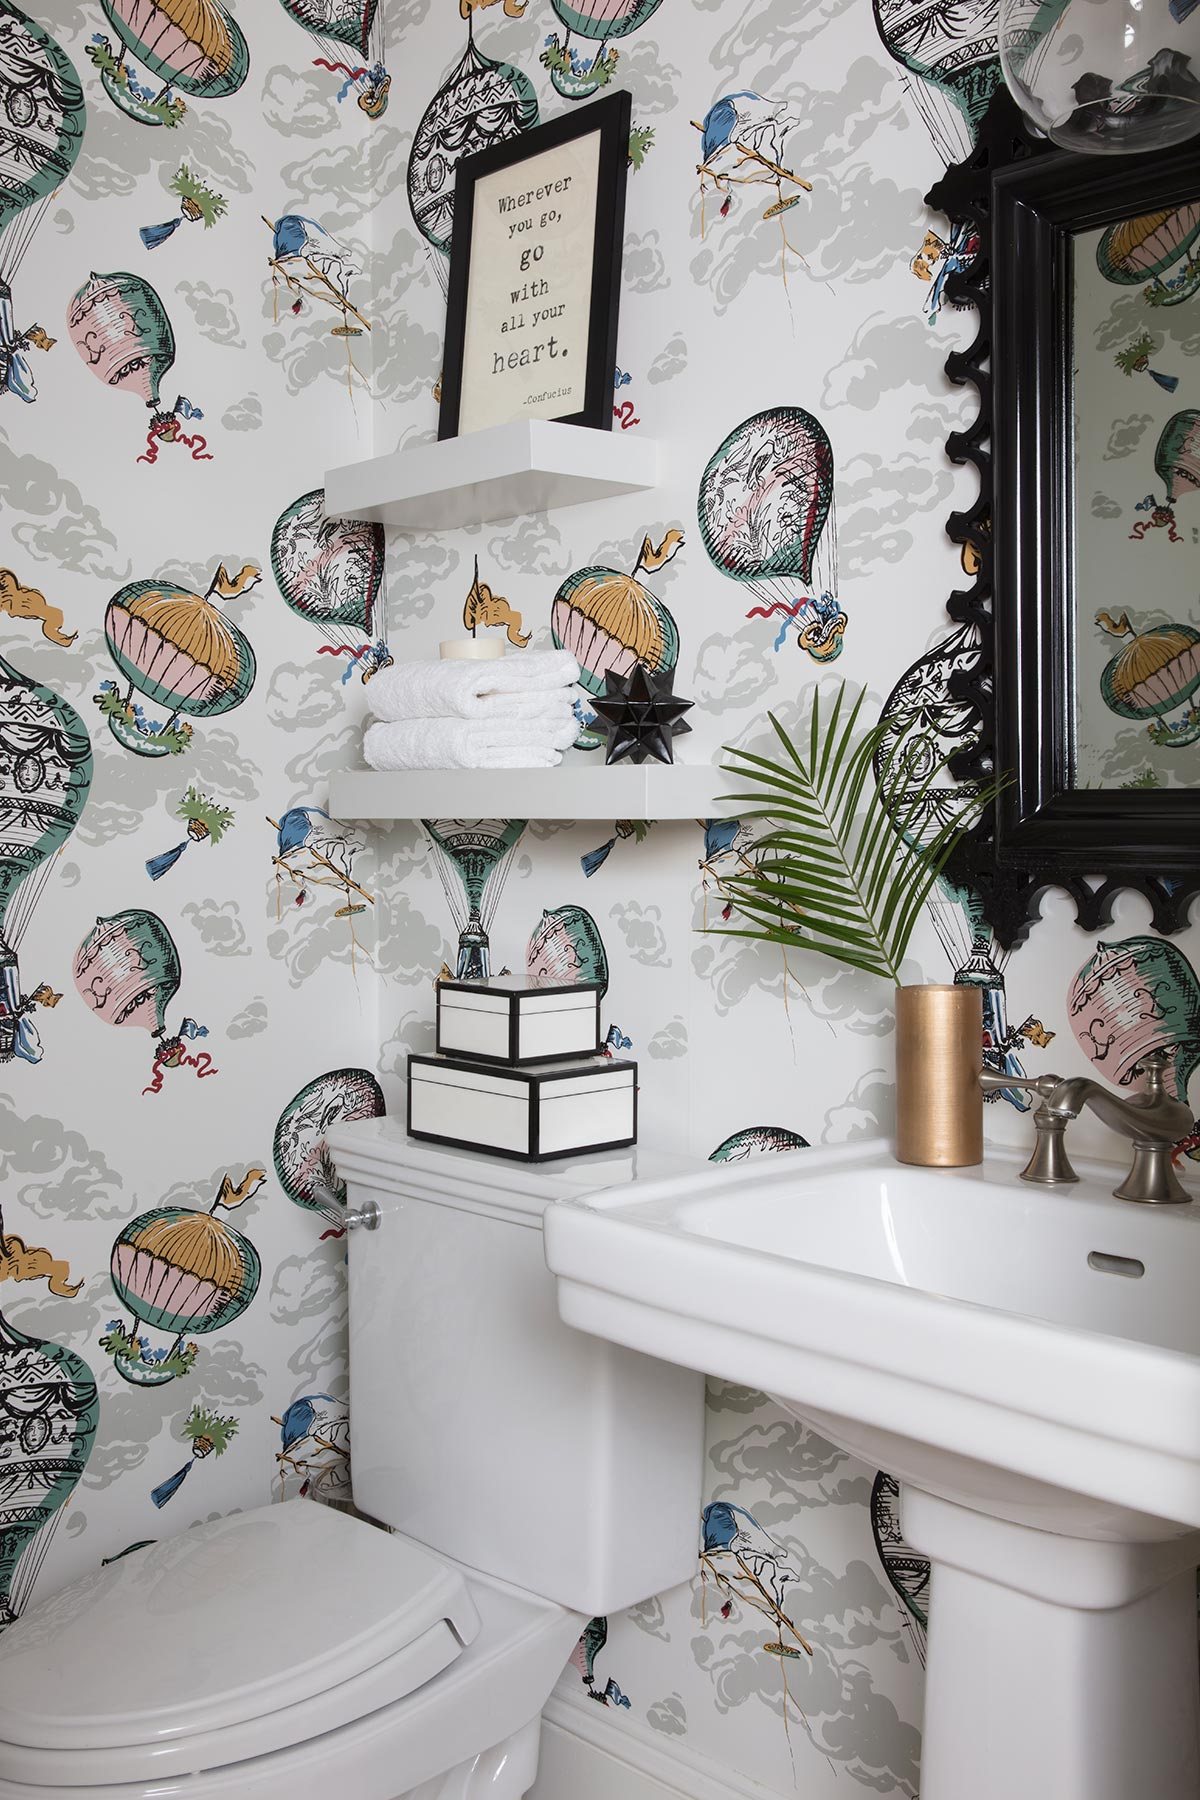 Powder Room with Hot Air Balloon Wallpaper